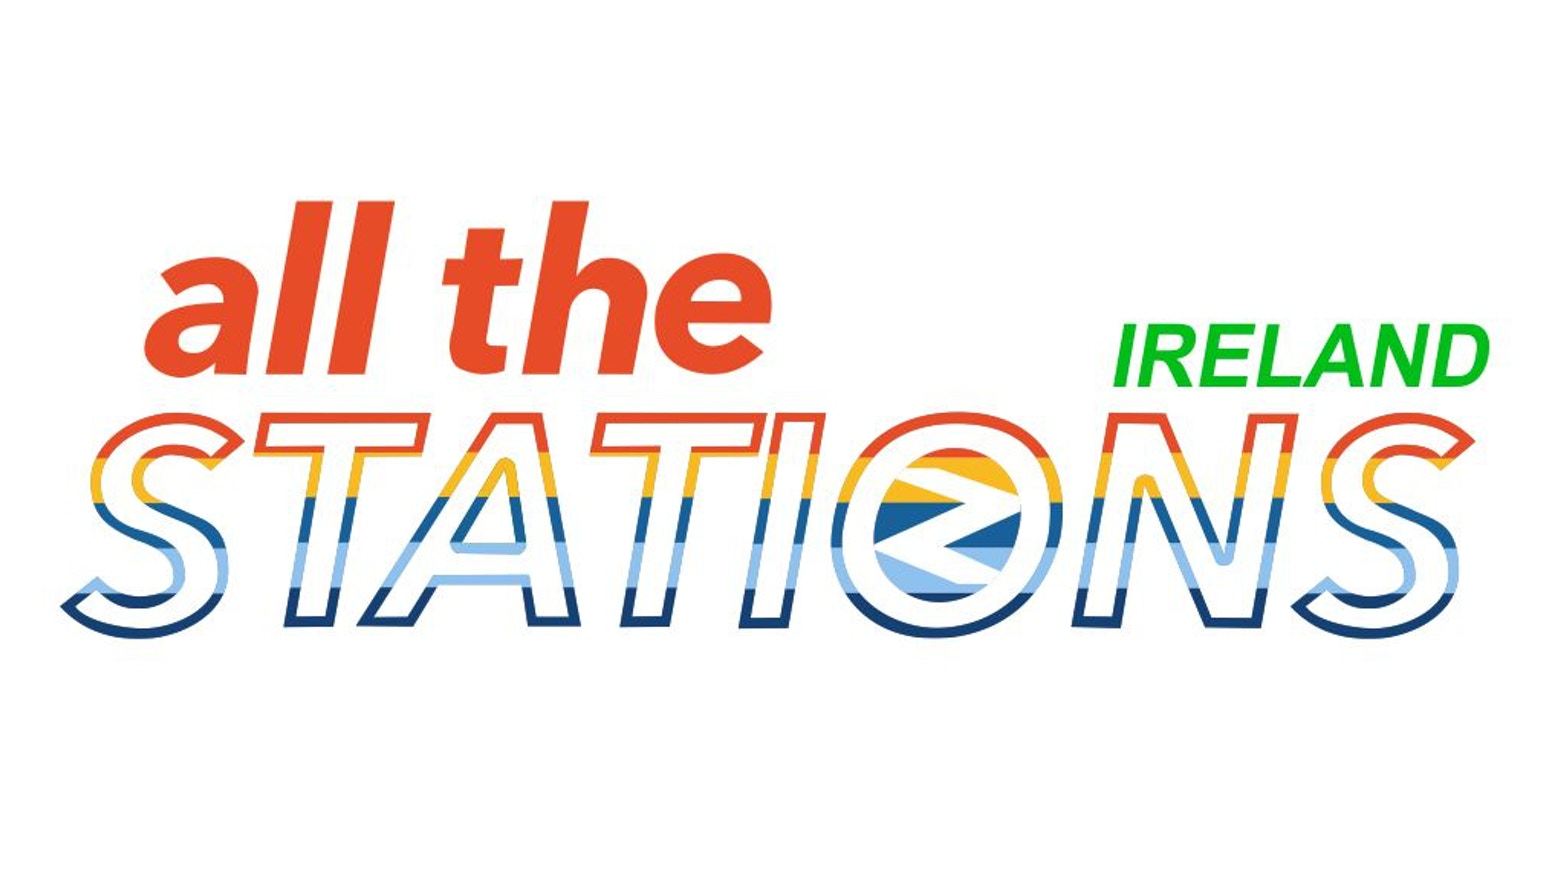 An online travel documentary about the 198 stations of Ireland and Northern Ireland.